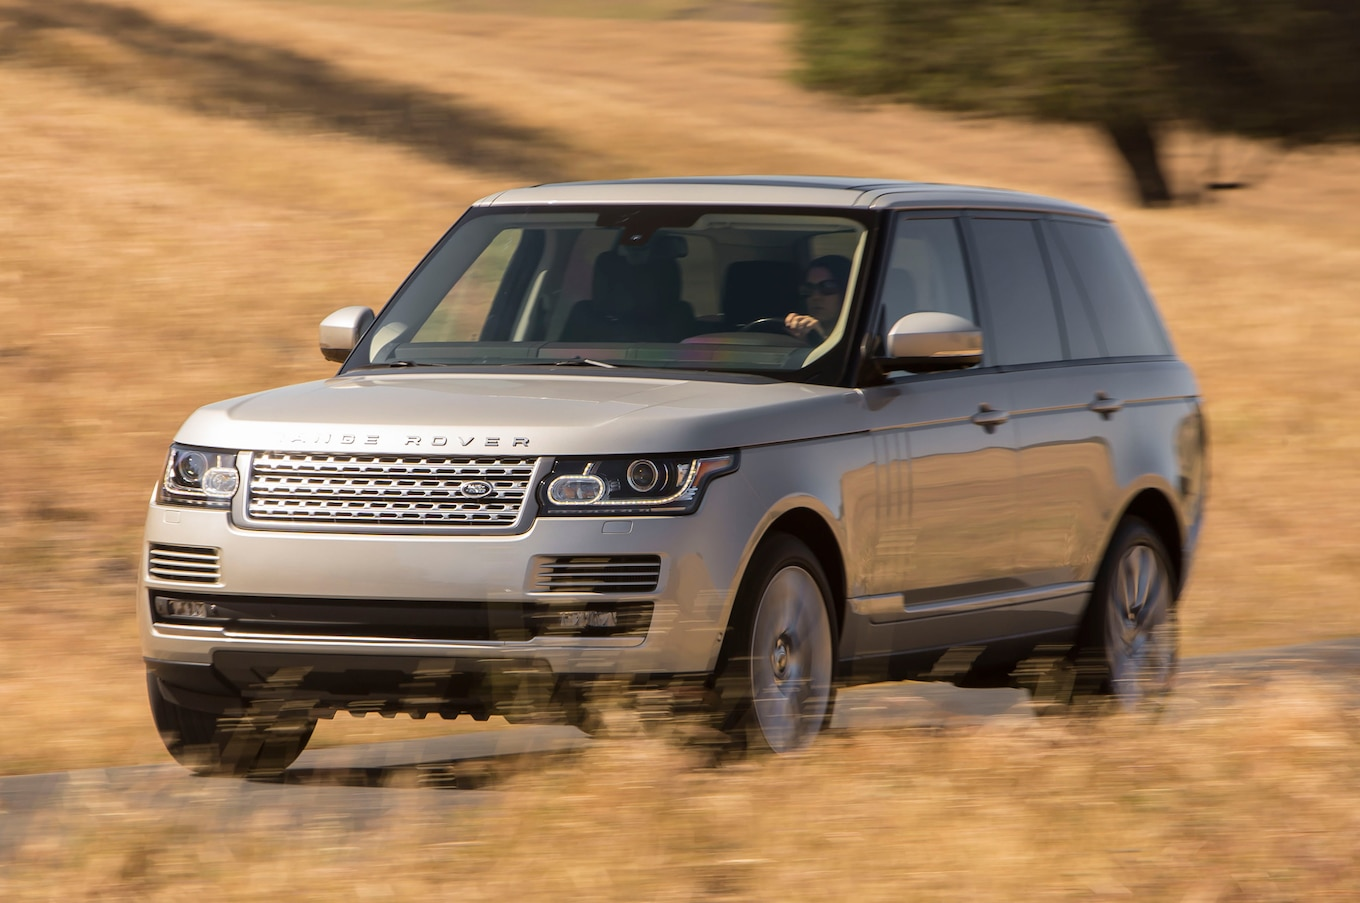 How Fast is the 2013 Range Rover Supercharged